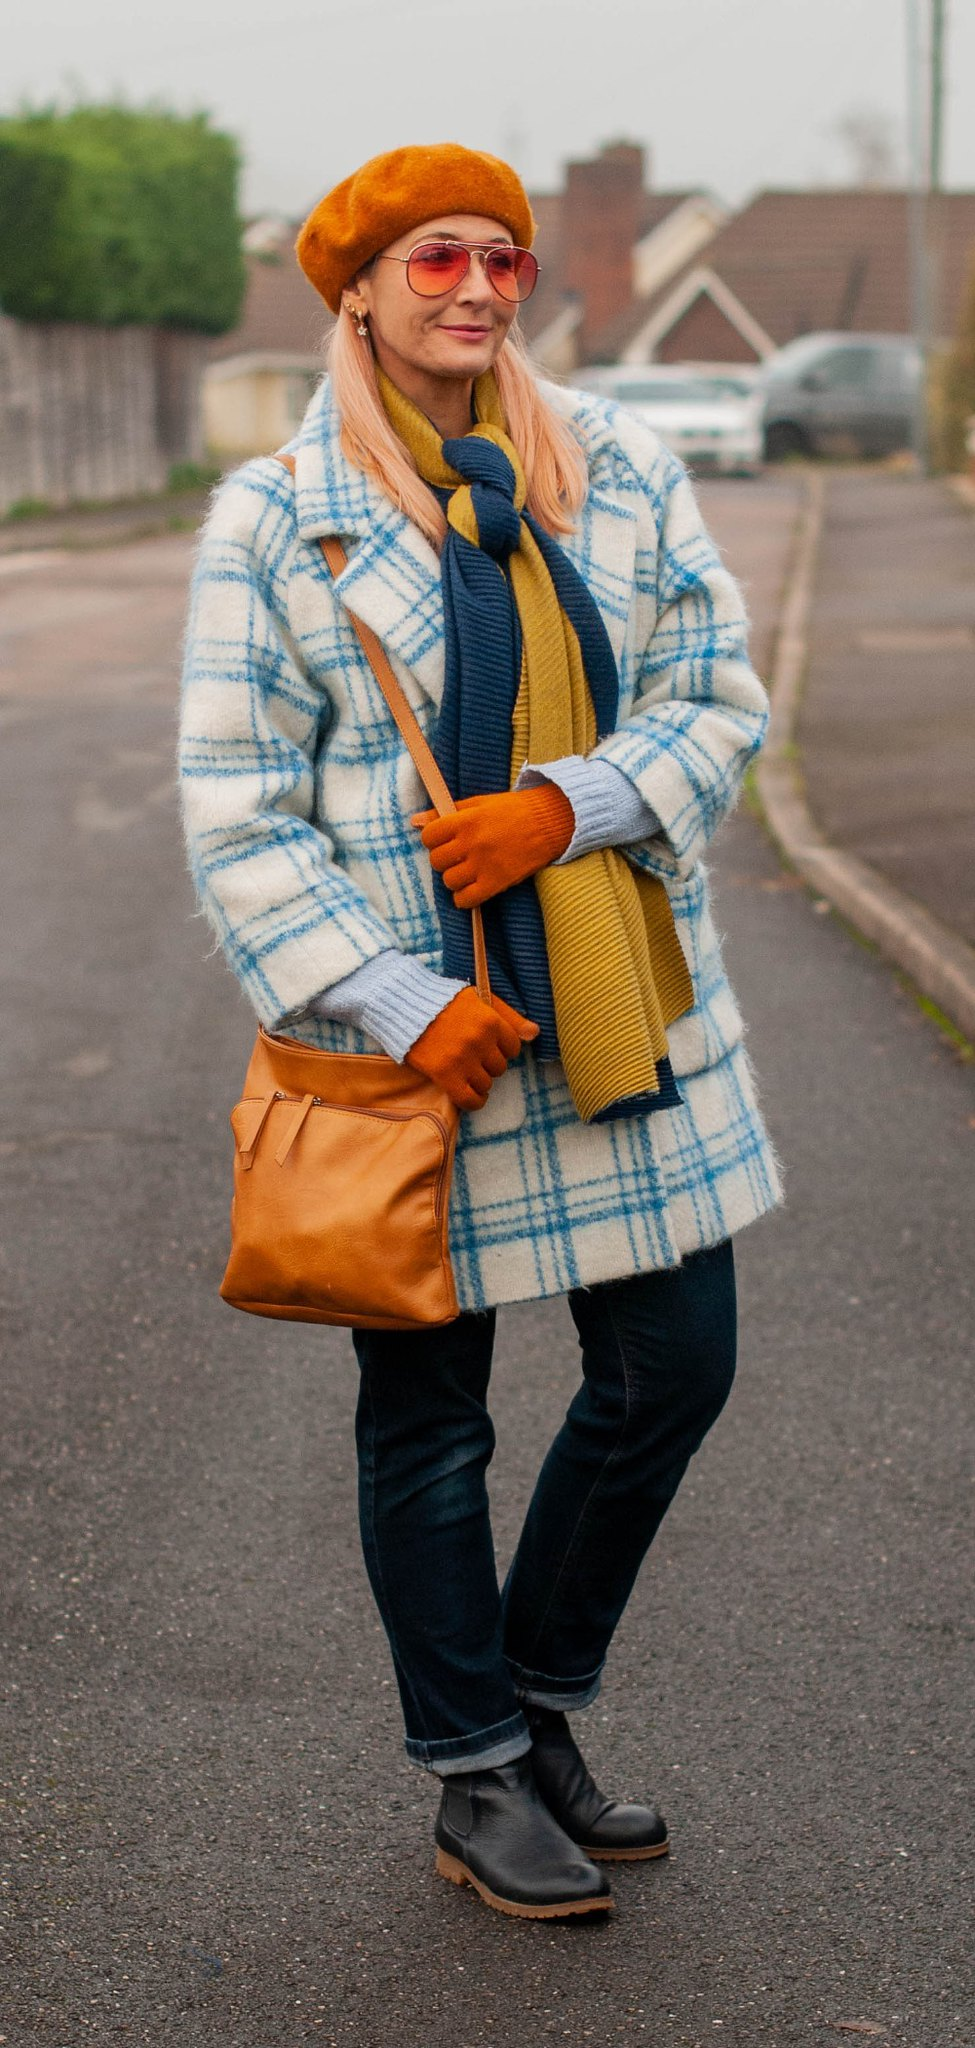 Hot Mess - Or More Coordinated Than I Thought? (Catherine Summers AKA Not Dressed As Lamb wearing blue/white checked cocoon coat, dark straight leg jeans, navy Chelsea boots, navy/ green woolen scarf, pumpkin orange beret and gloves, tan cross-body bag)